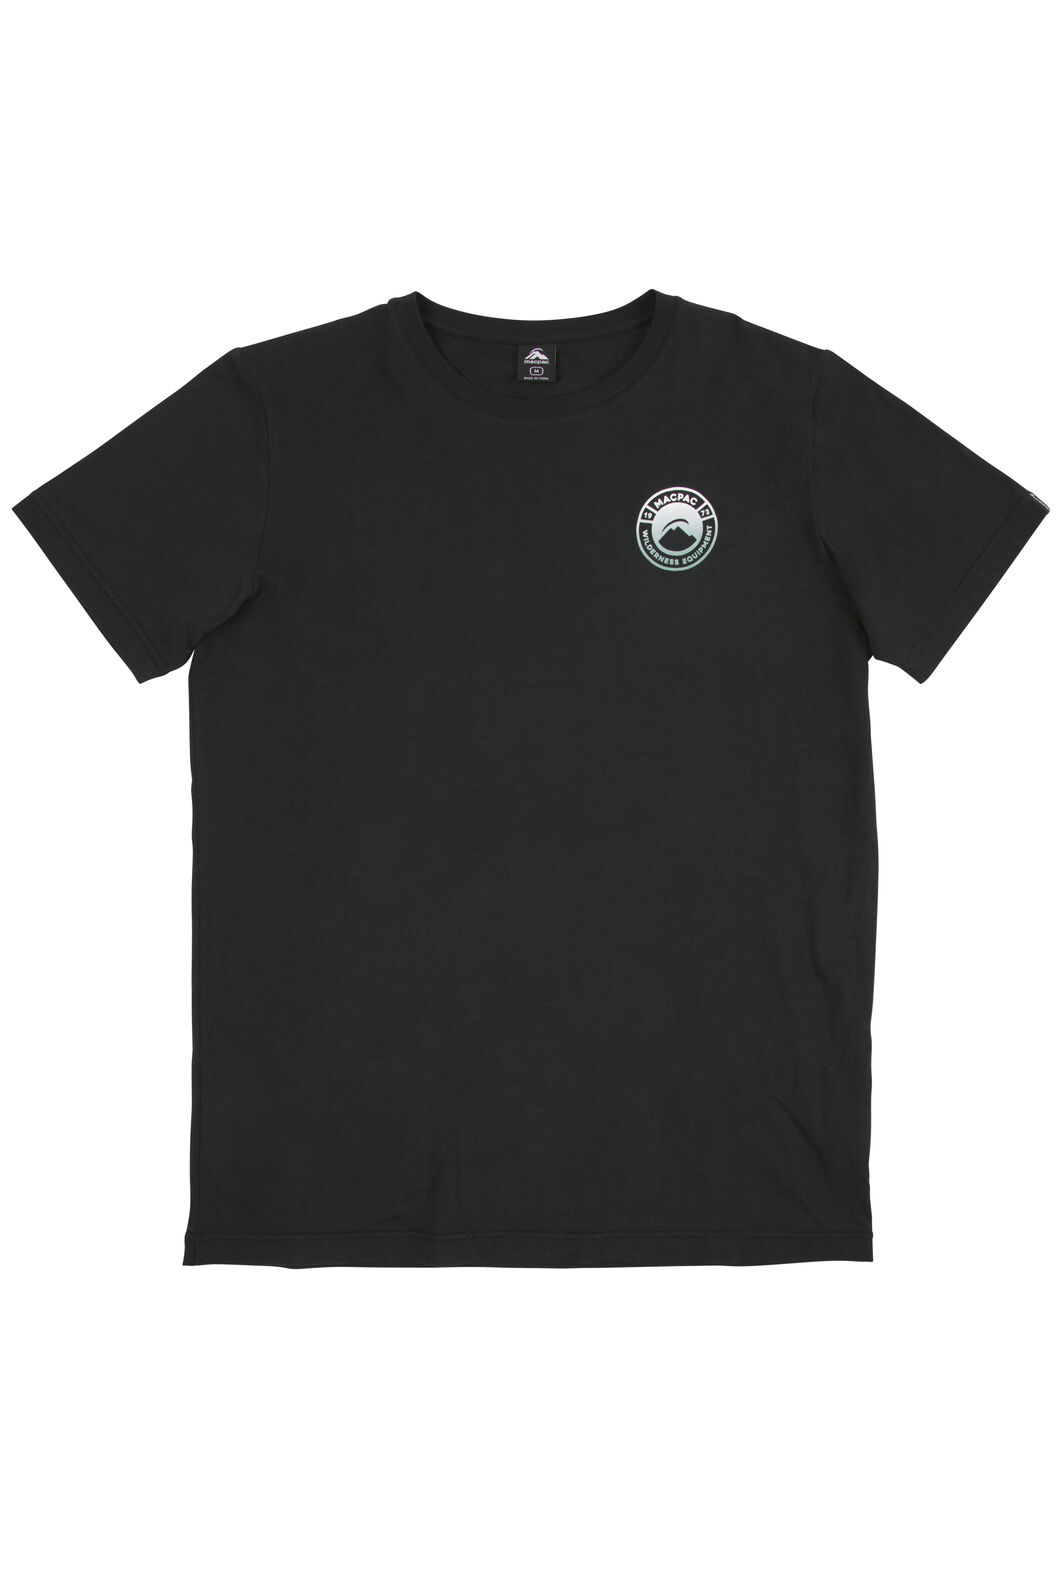 Macpac Gradient Organic Cotton Tee - Men's, Black, hi-res